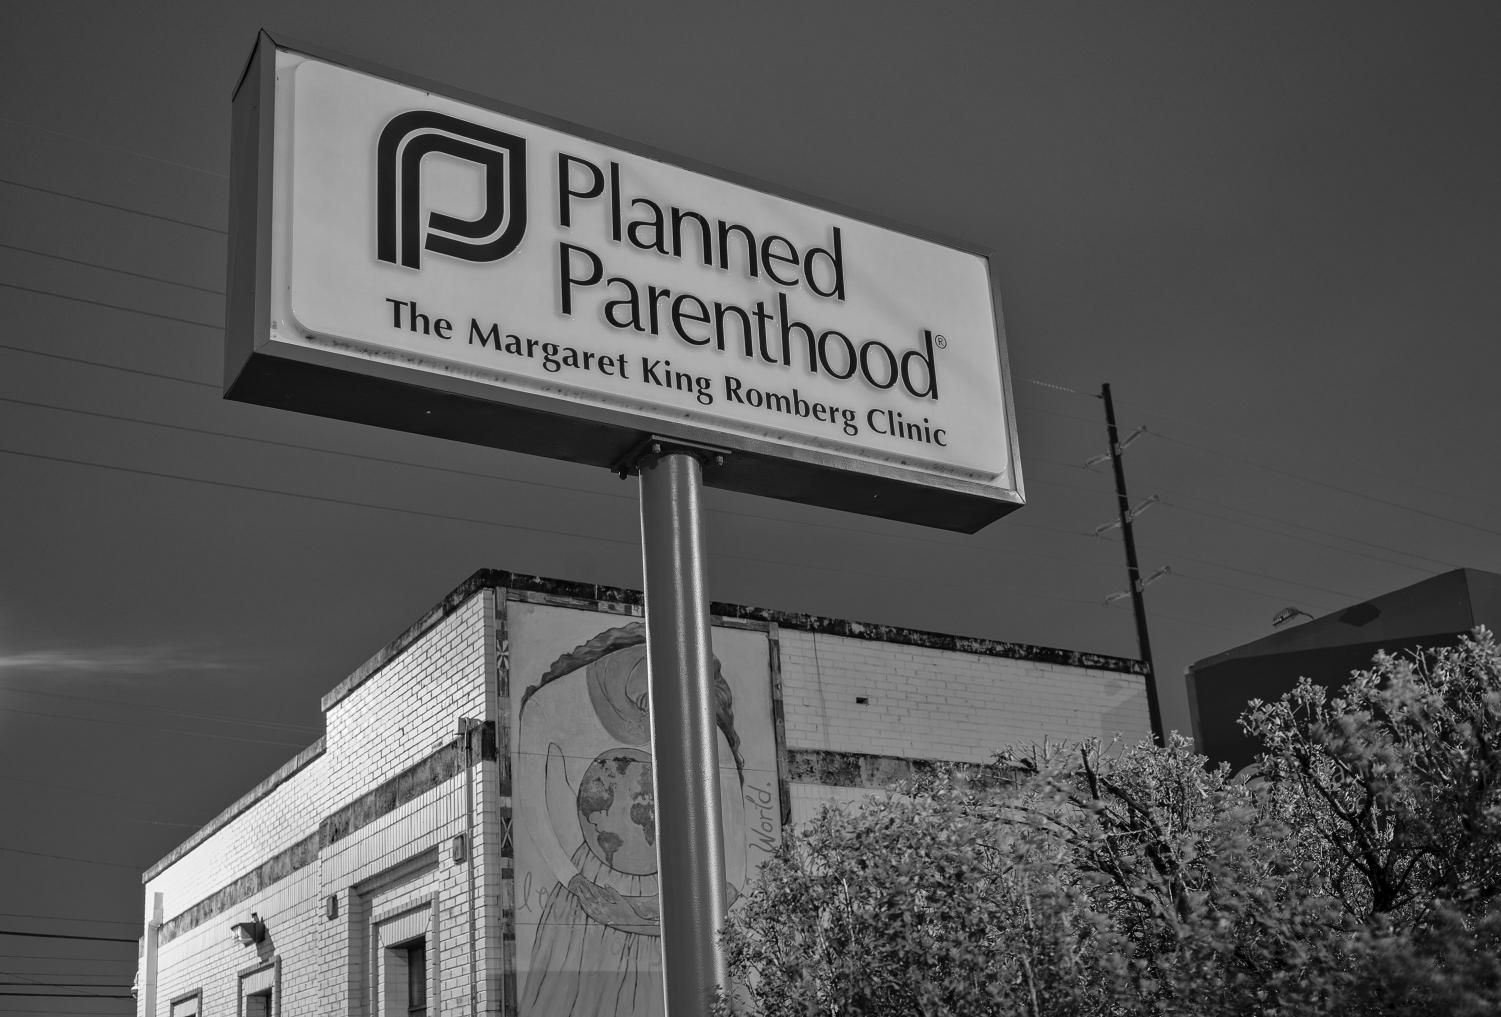 In Planned Parenthood's annual report from 2018, the organization provided STI testing and treatment for about 4,723,985 people. Abortions only made up 3.4% of the organization's services.